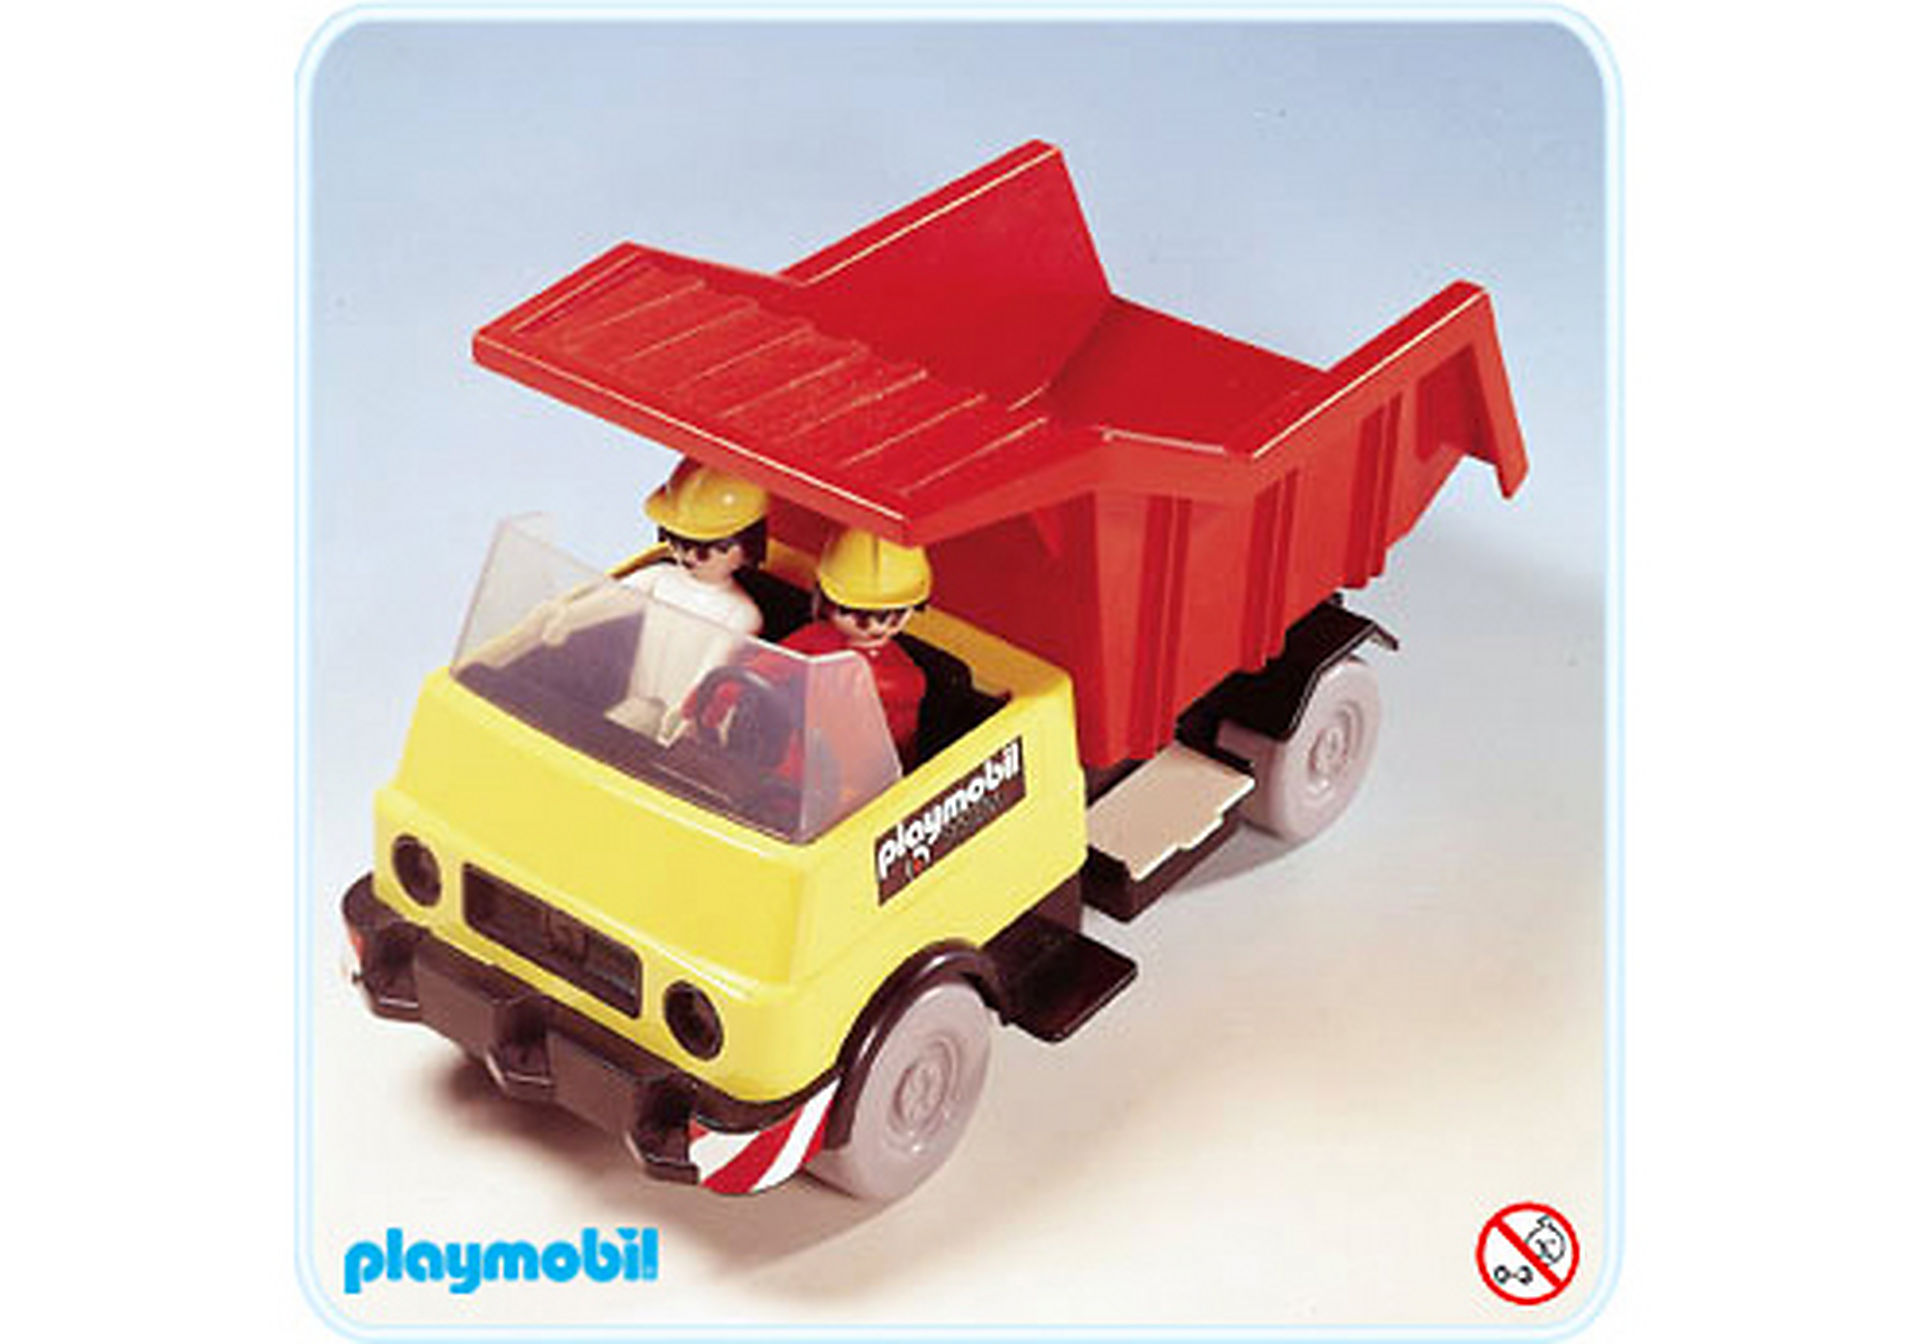 http://media.playmobil.com/i/playmobil/3209-A_product_detail/Benne basculante fontale